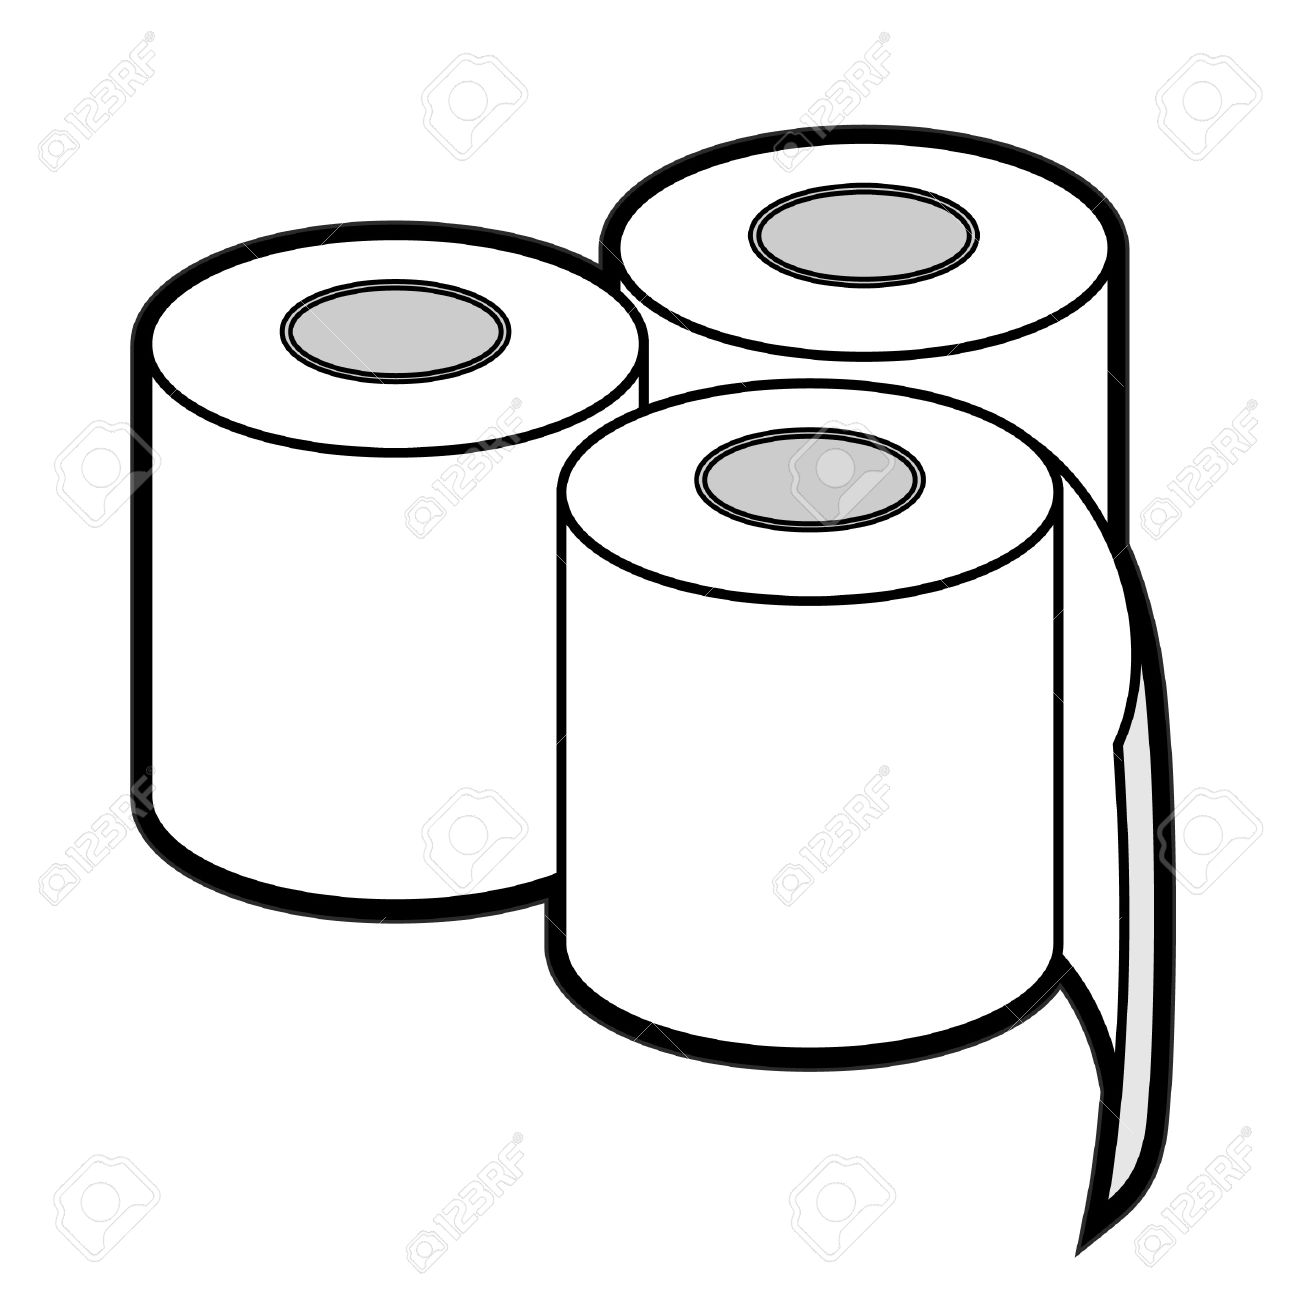 Toilet roll clipart.